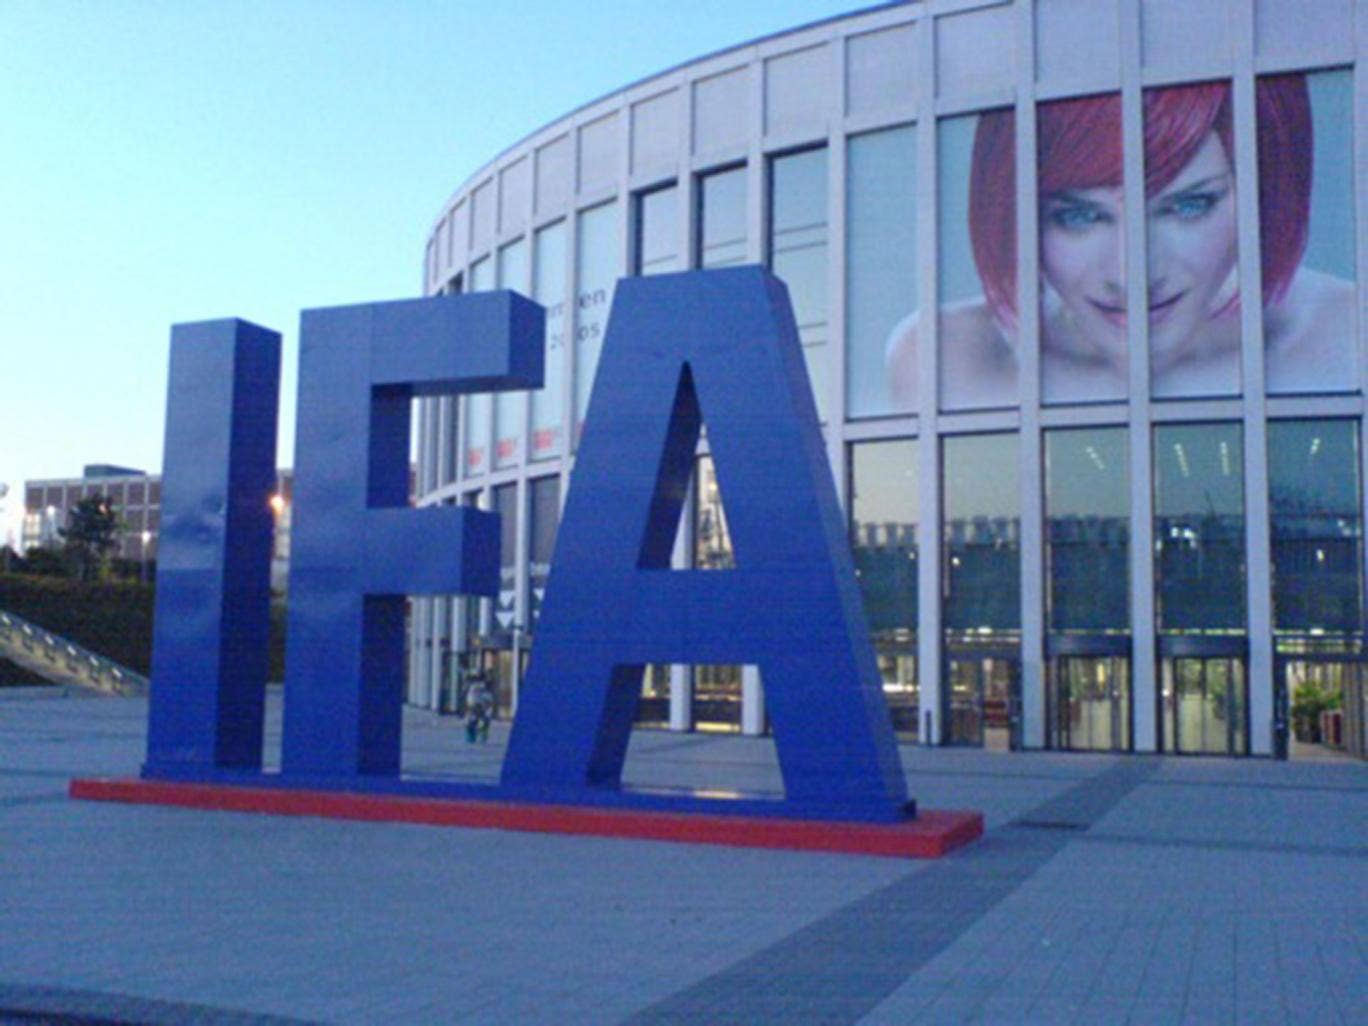 The IFA is held at the Messe Berlin convention centre (pictured here in 2005)